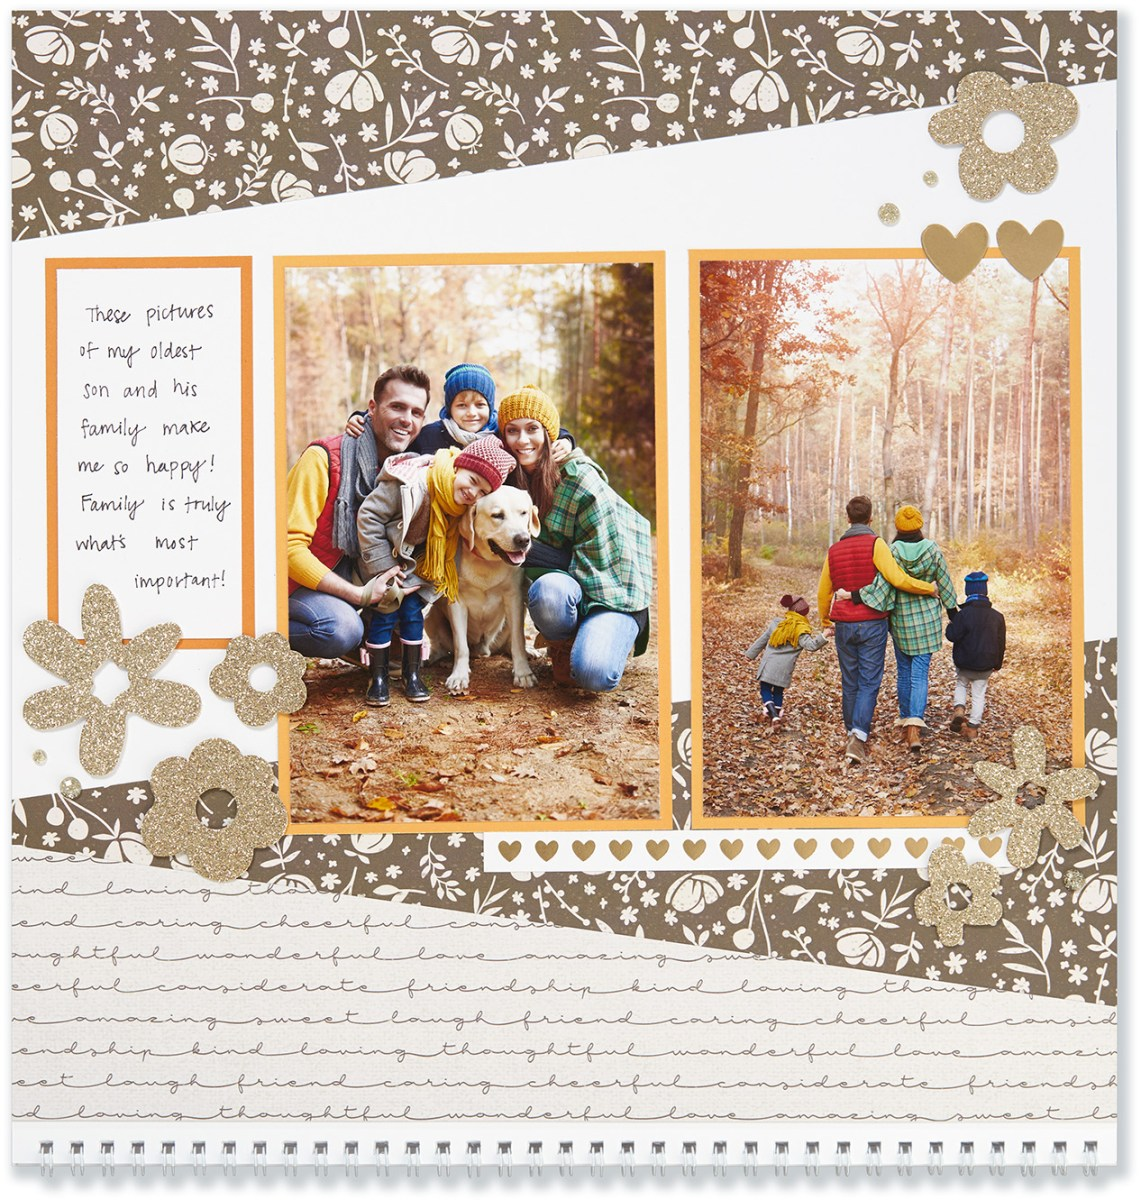 Through the Year #ctmh #closetomyheart #throughtheyear #calendar #kit #scrapbooking #scrapbook #memorykeeping #keepsake #gift #diy #family #Chrismas #present #photos #gold #glitter #diecut #gems #flowers #hearts